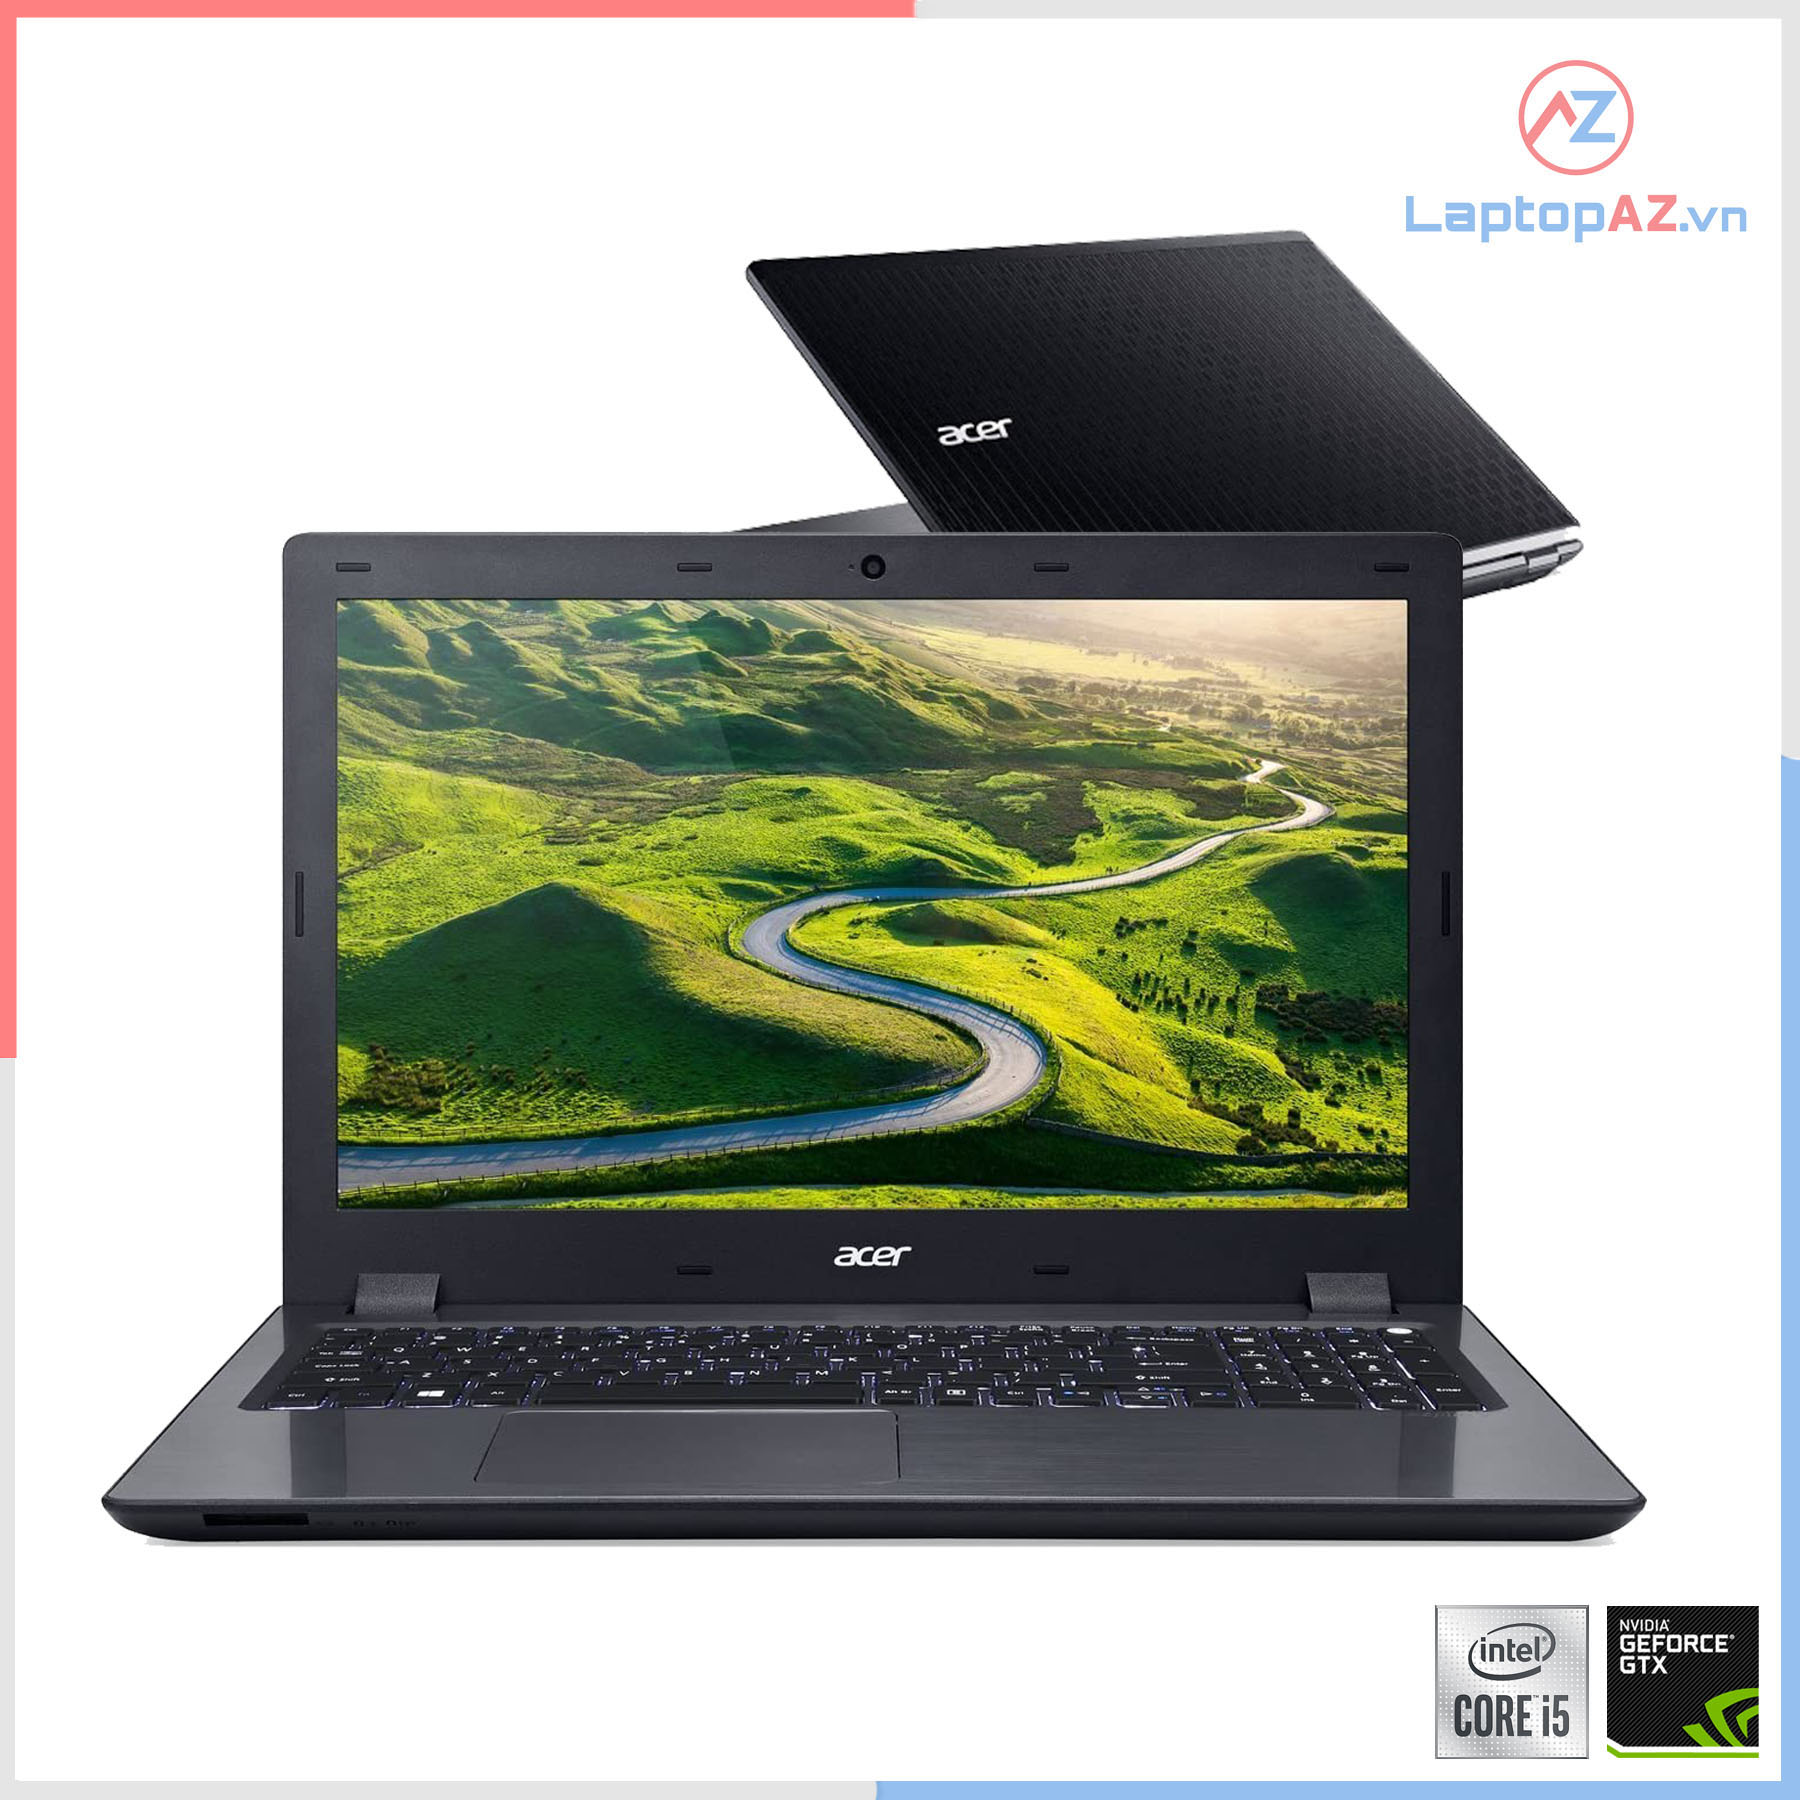 Laptop Acer V5-591G (Core i5-6300HQ, 4GB, 1T, VGA 2GB NVIDIA GeForce GTX 950M , 15.6 inch, HD)